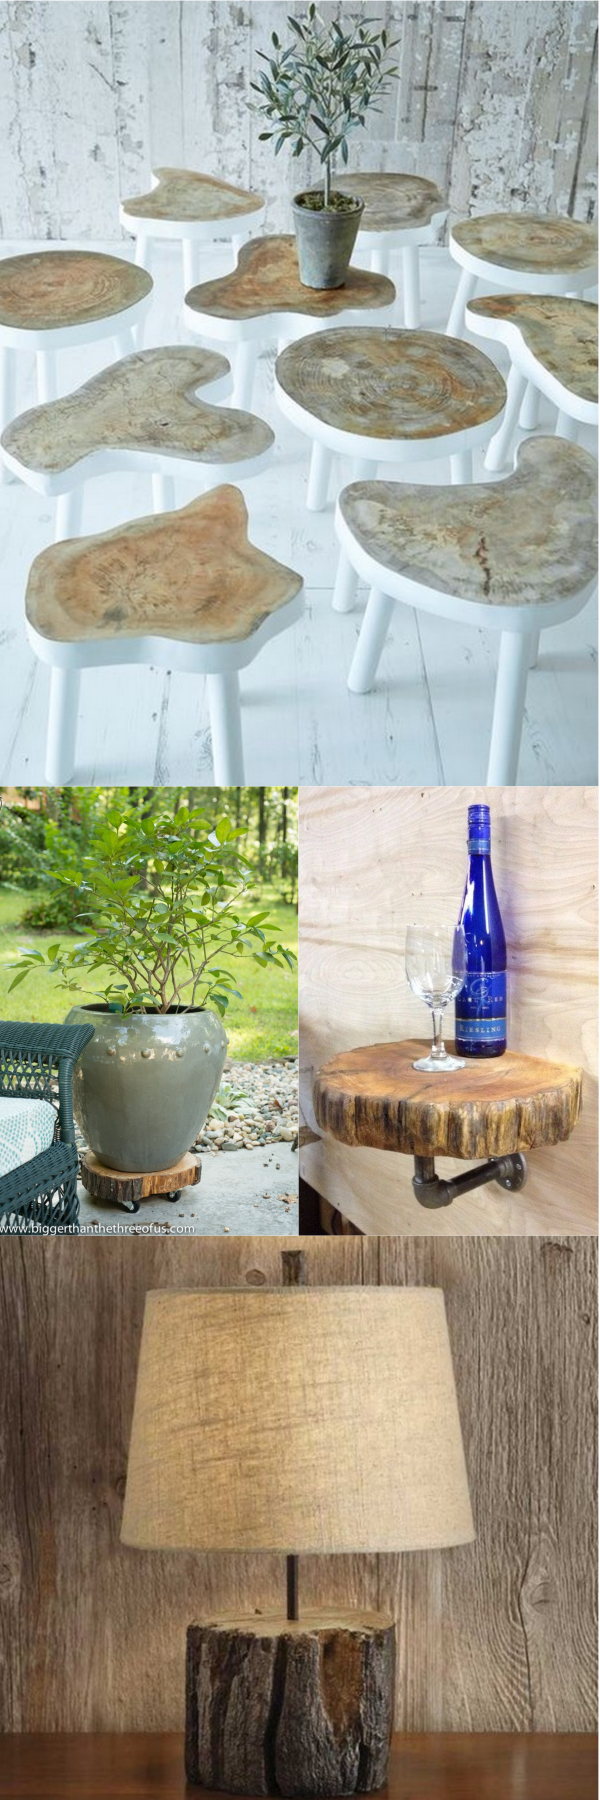 Tree Stump Home Decoration Ideas You Can Make Easily • Diy Homedecorz